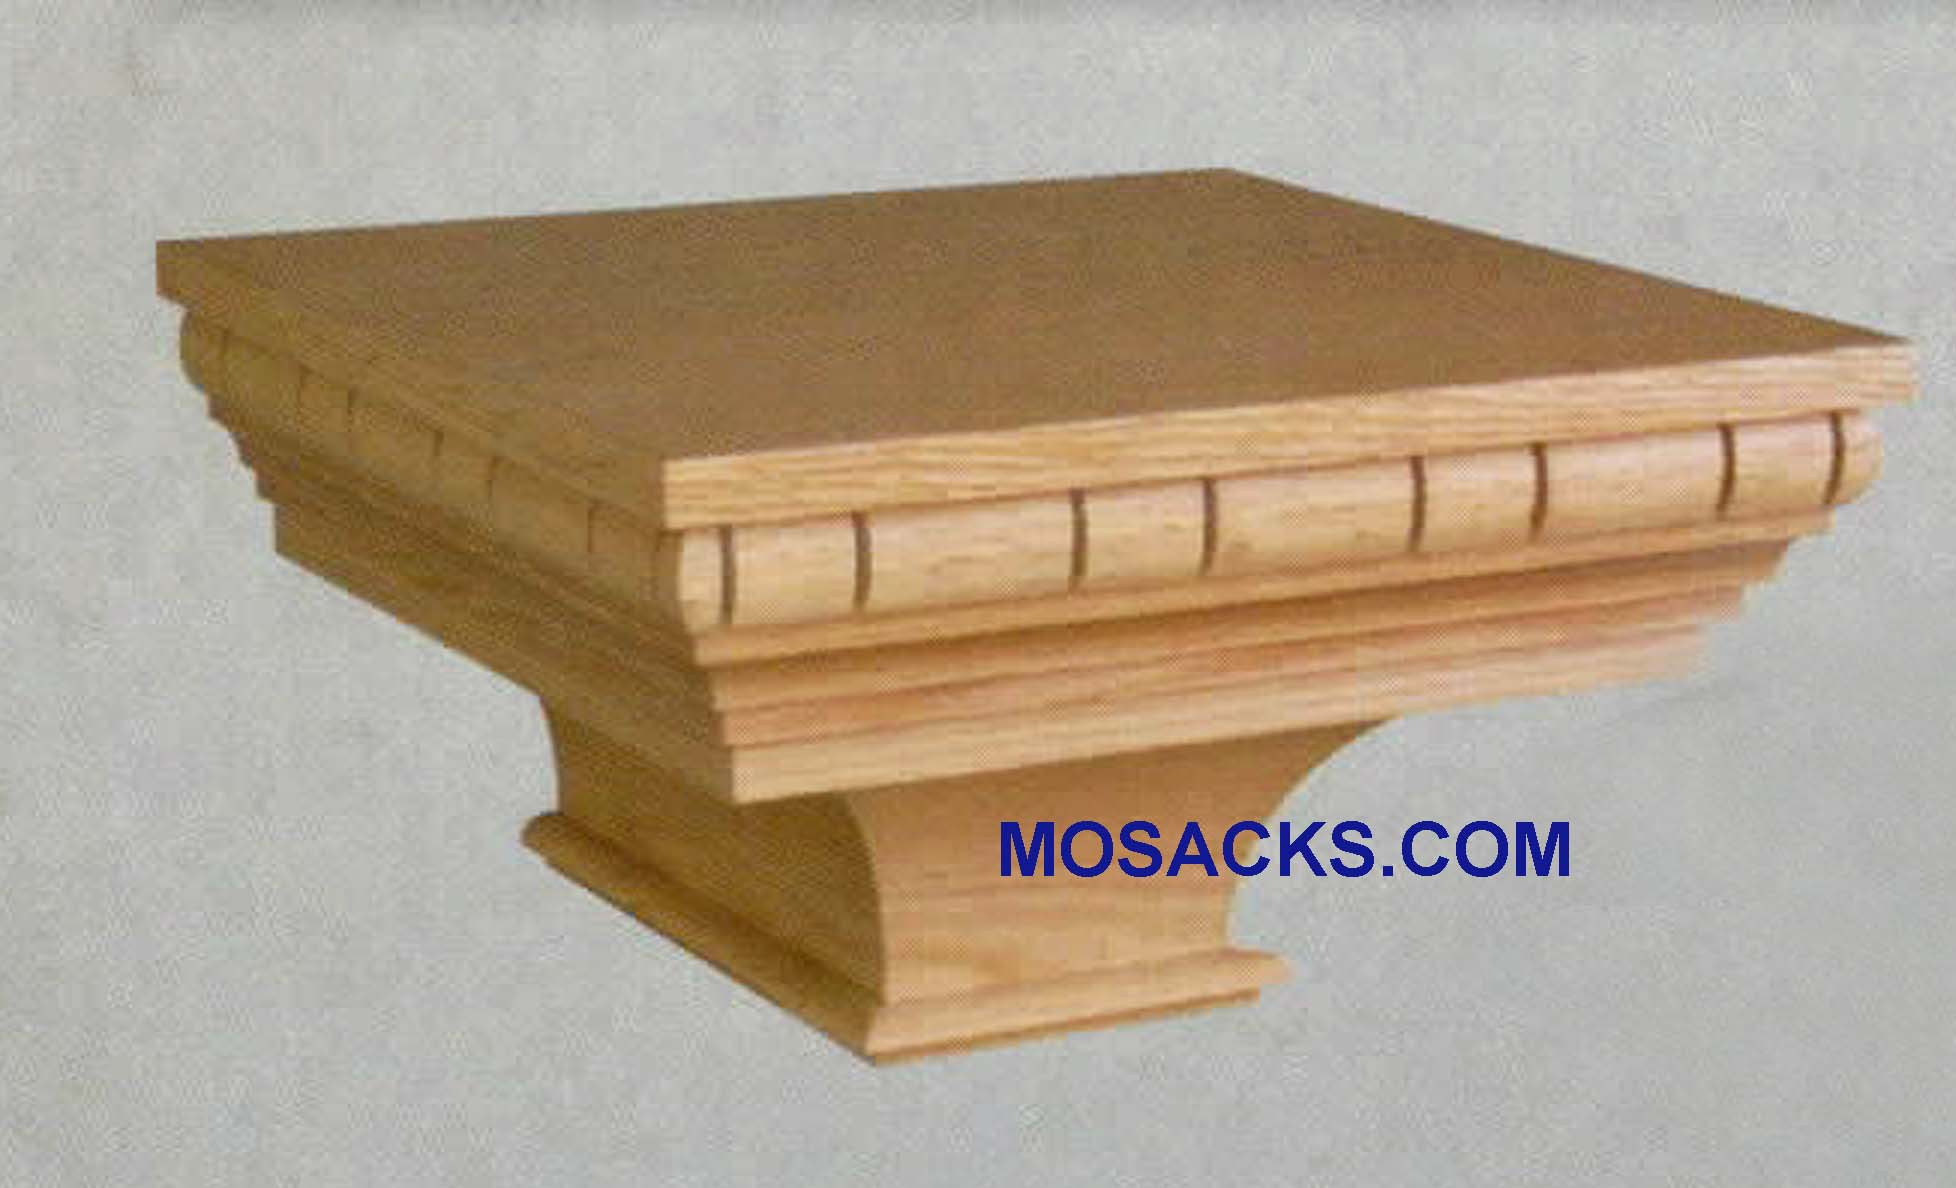 "Wooden Wall Mount Pedestal 16""w x 15""d, 9""h #426 W Brand Church Furniture at Mosack's"